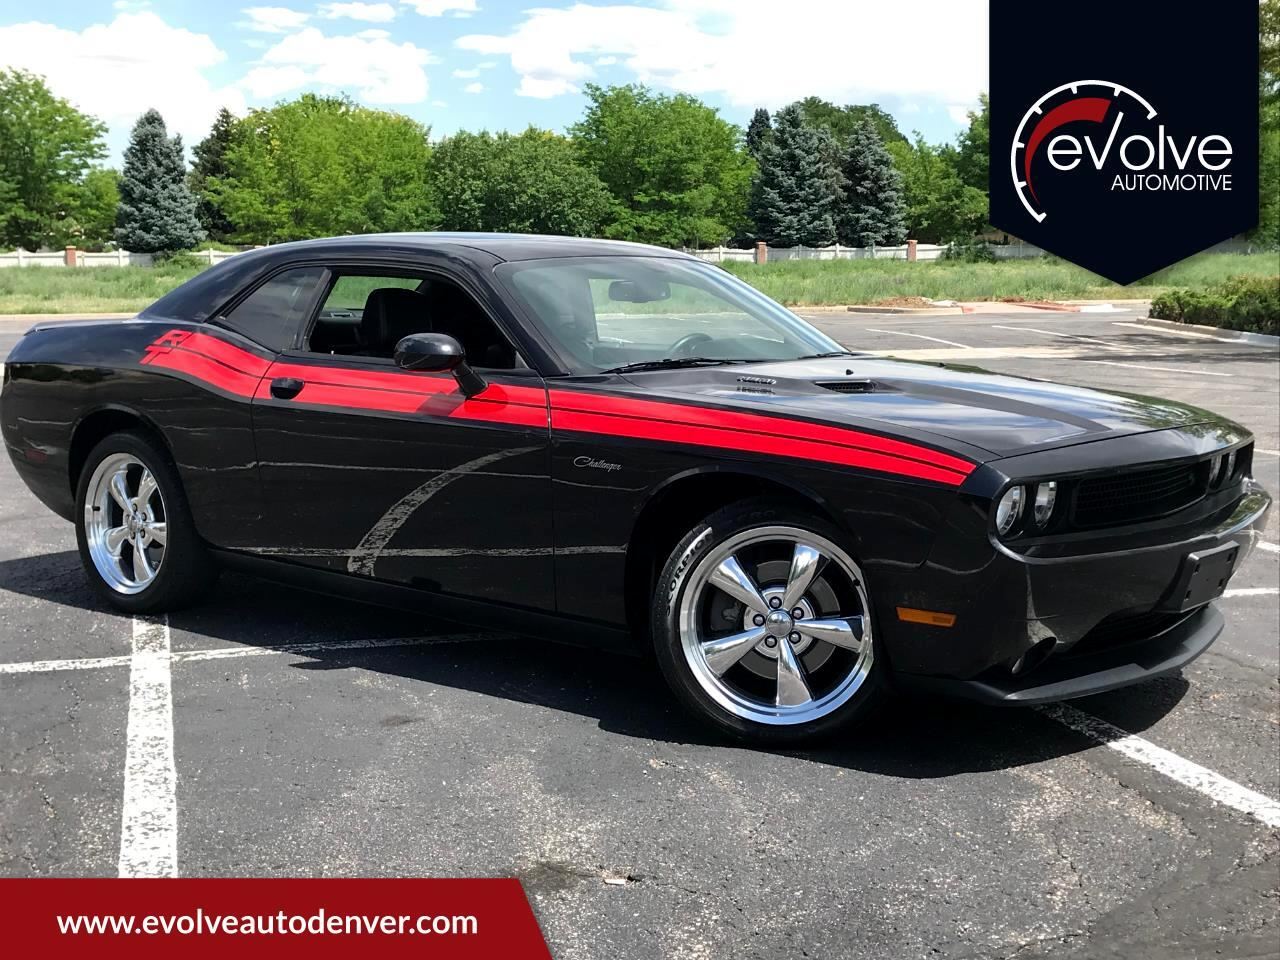 2011 Dodge Challenger R/T Classic